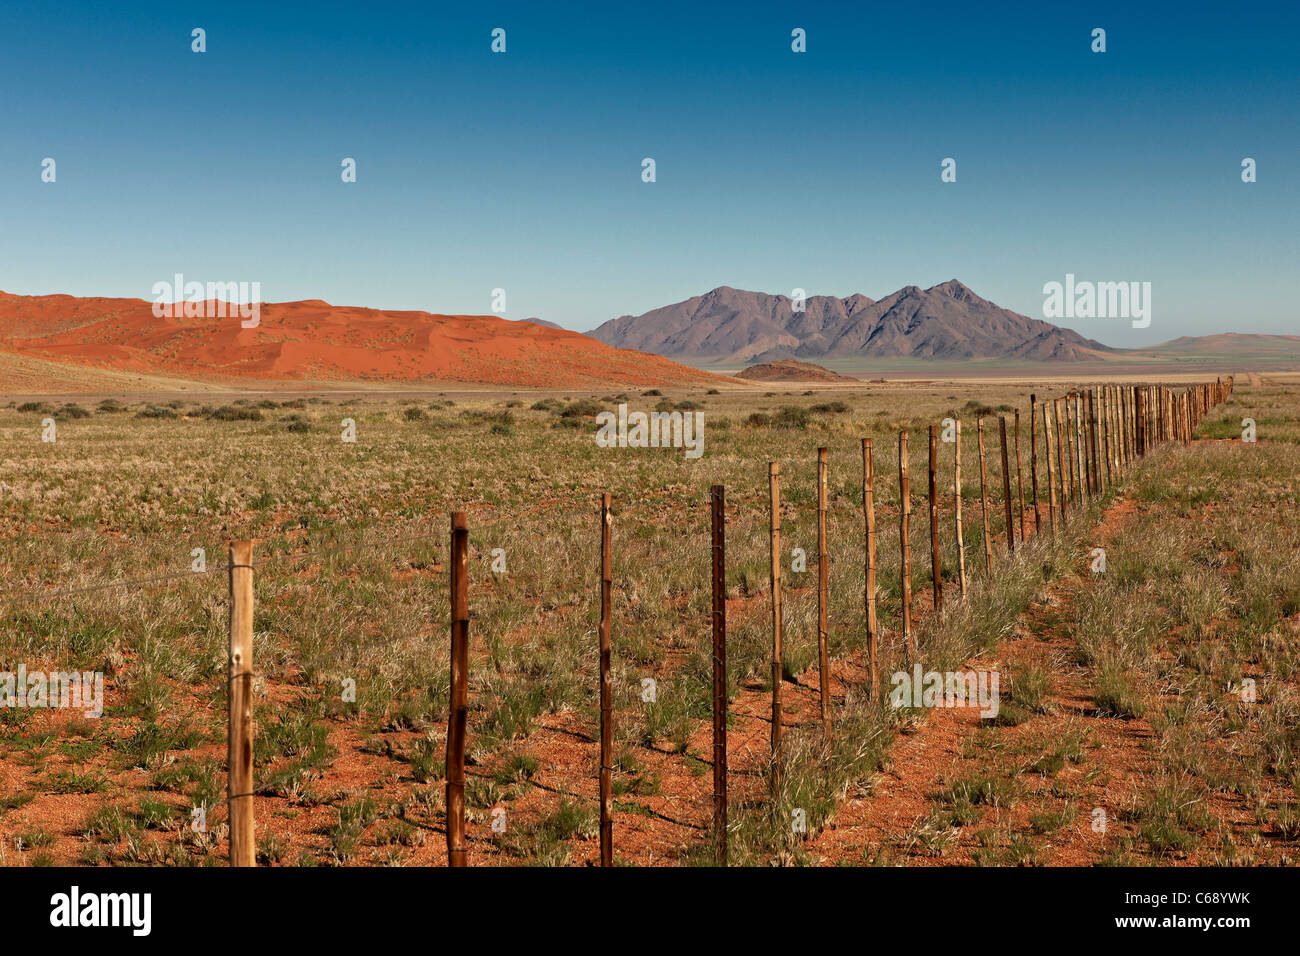 endless fence in desert landscape, secondary road D 707, Namibia, Africa - Stock Image